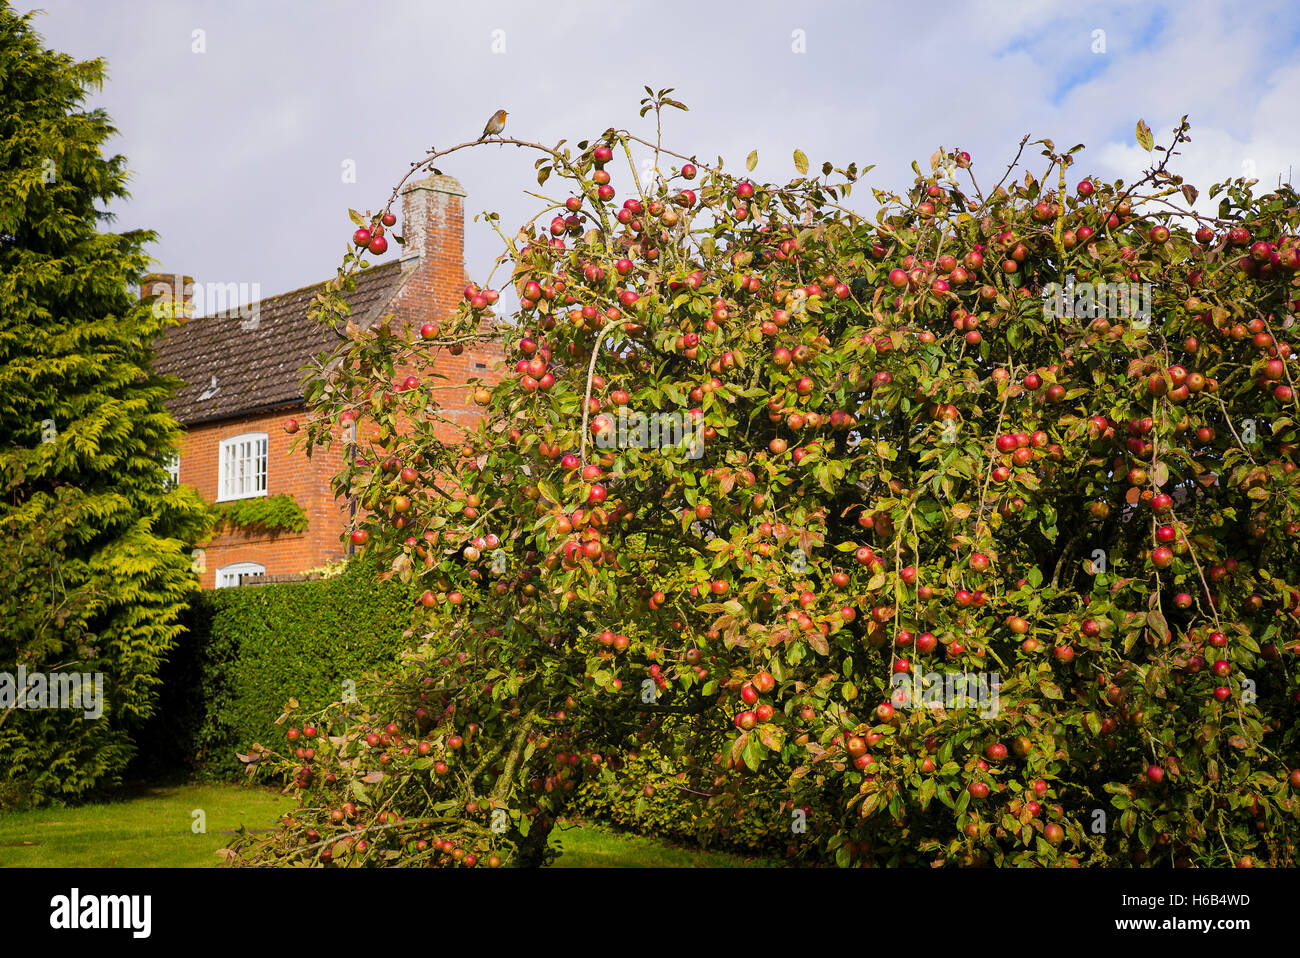 A fruit tree laden with ripe red Tydeman's Late Orange apples in a country garden in UK - Stock Image